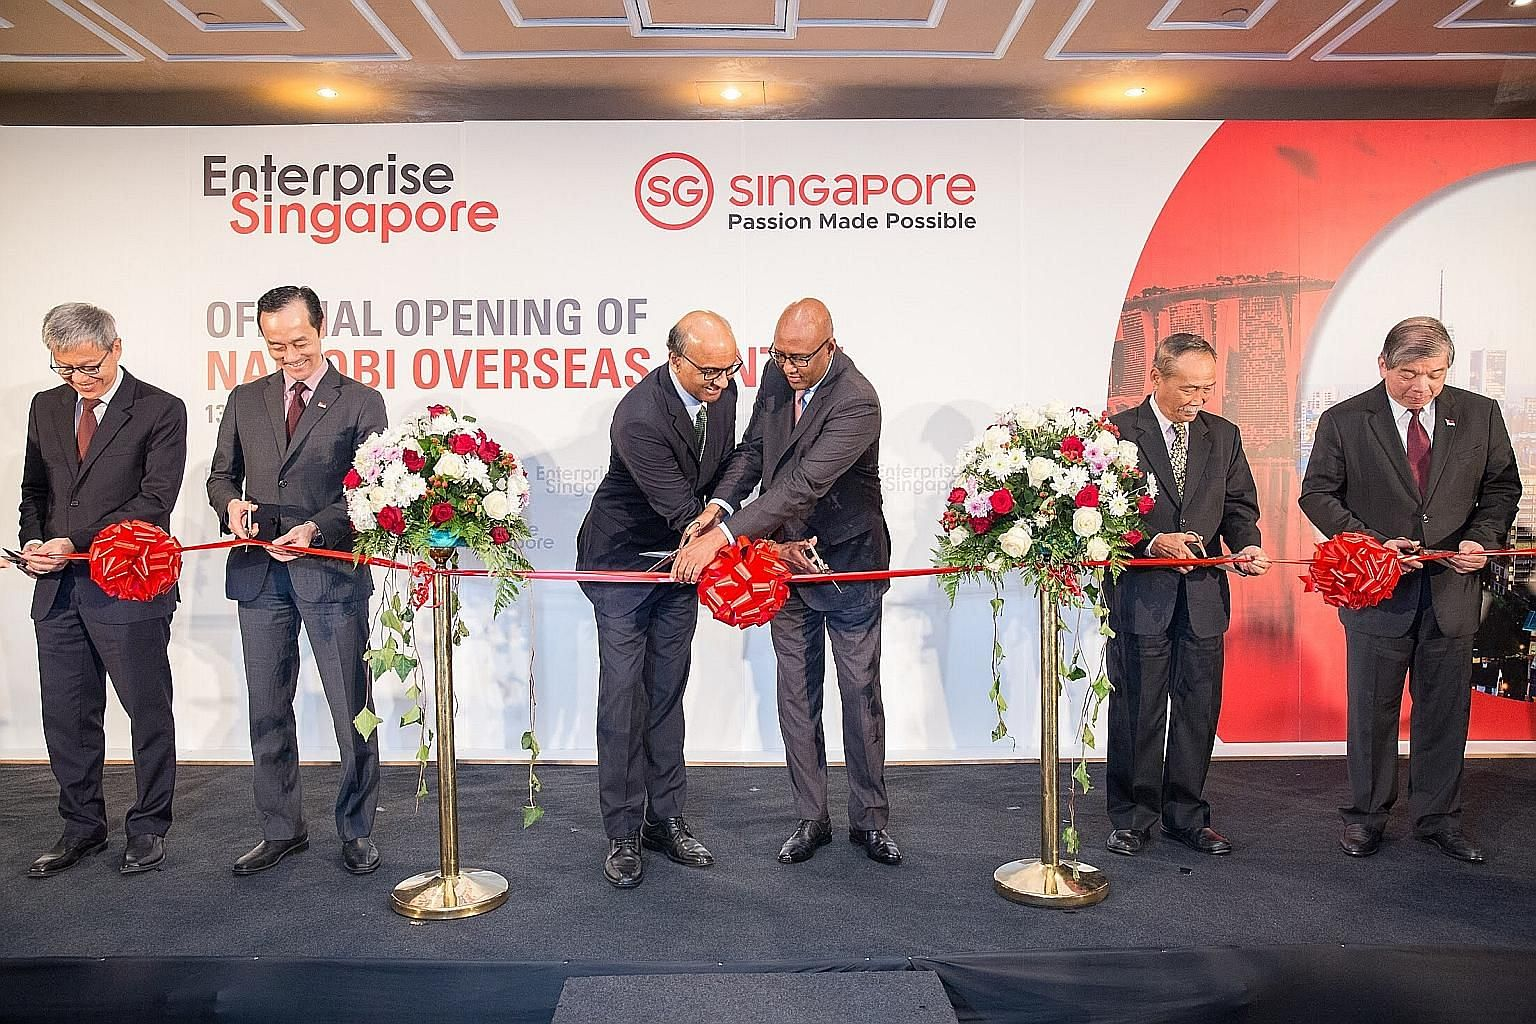 (From left) Enterprise Singapore assistant chief executive Yew Sung Pei, Senior Minister of State for Trade and Industry Koh Poh Koon, Deputy Prime Minister Tharman Shanmugaratnam, Kenyan Cabinet Secretary for Ministry of Industry, Trade and Cooperat